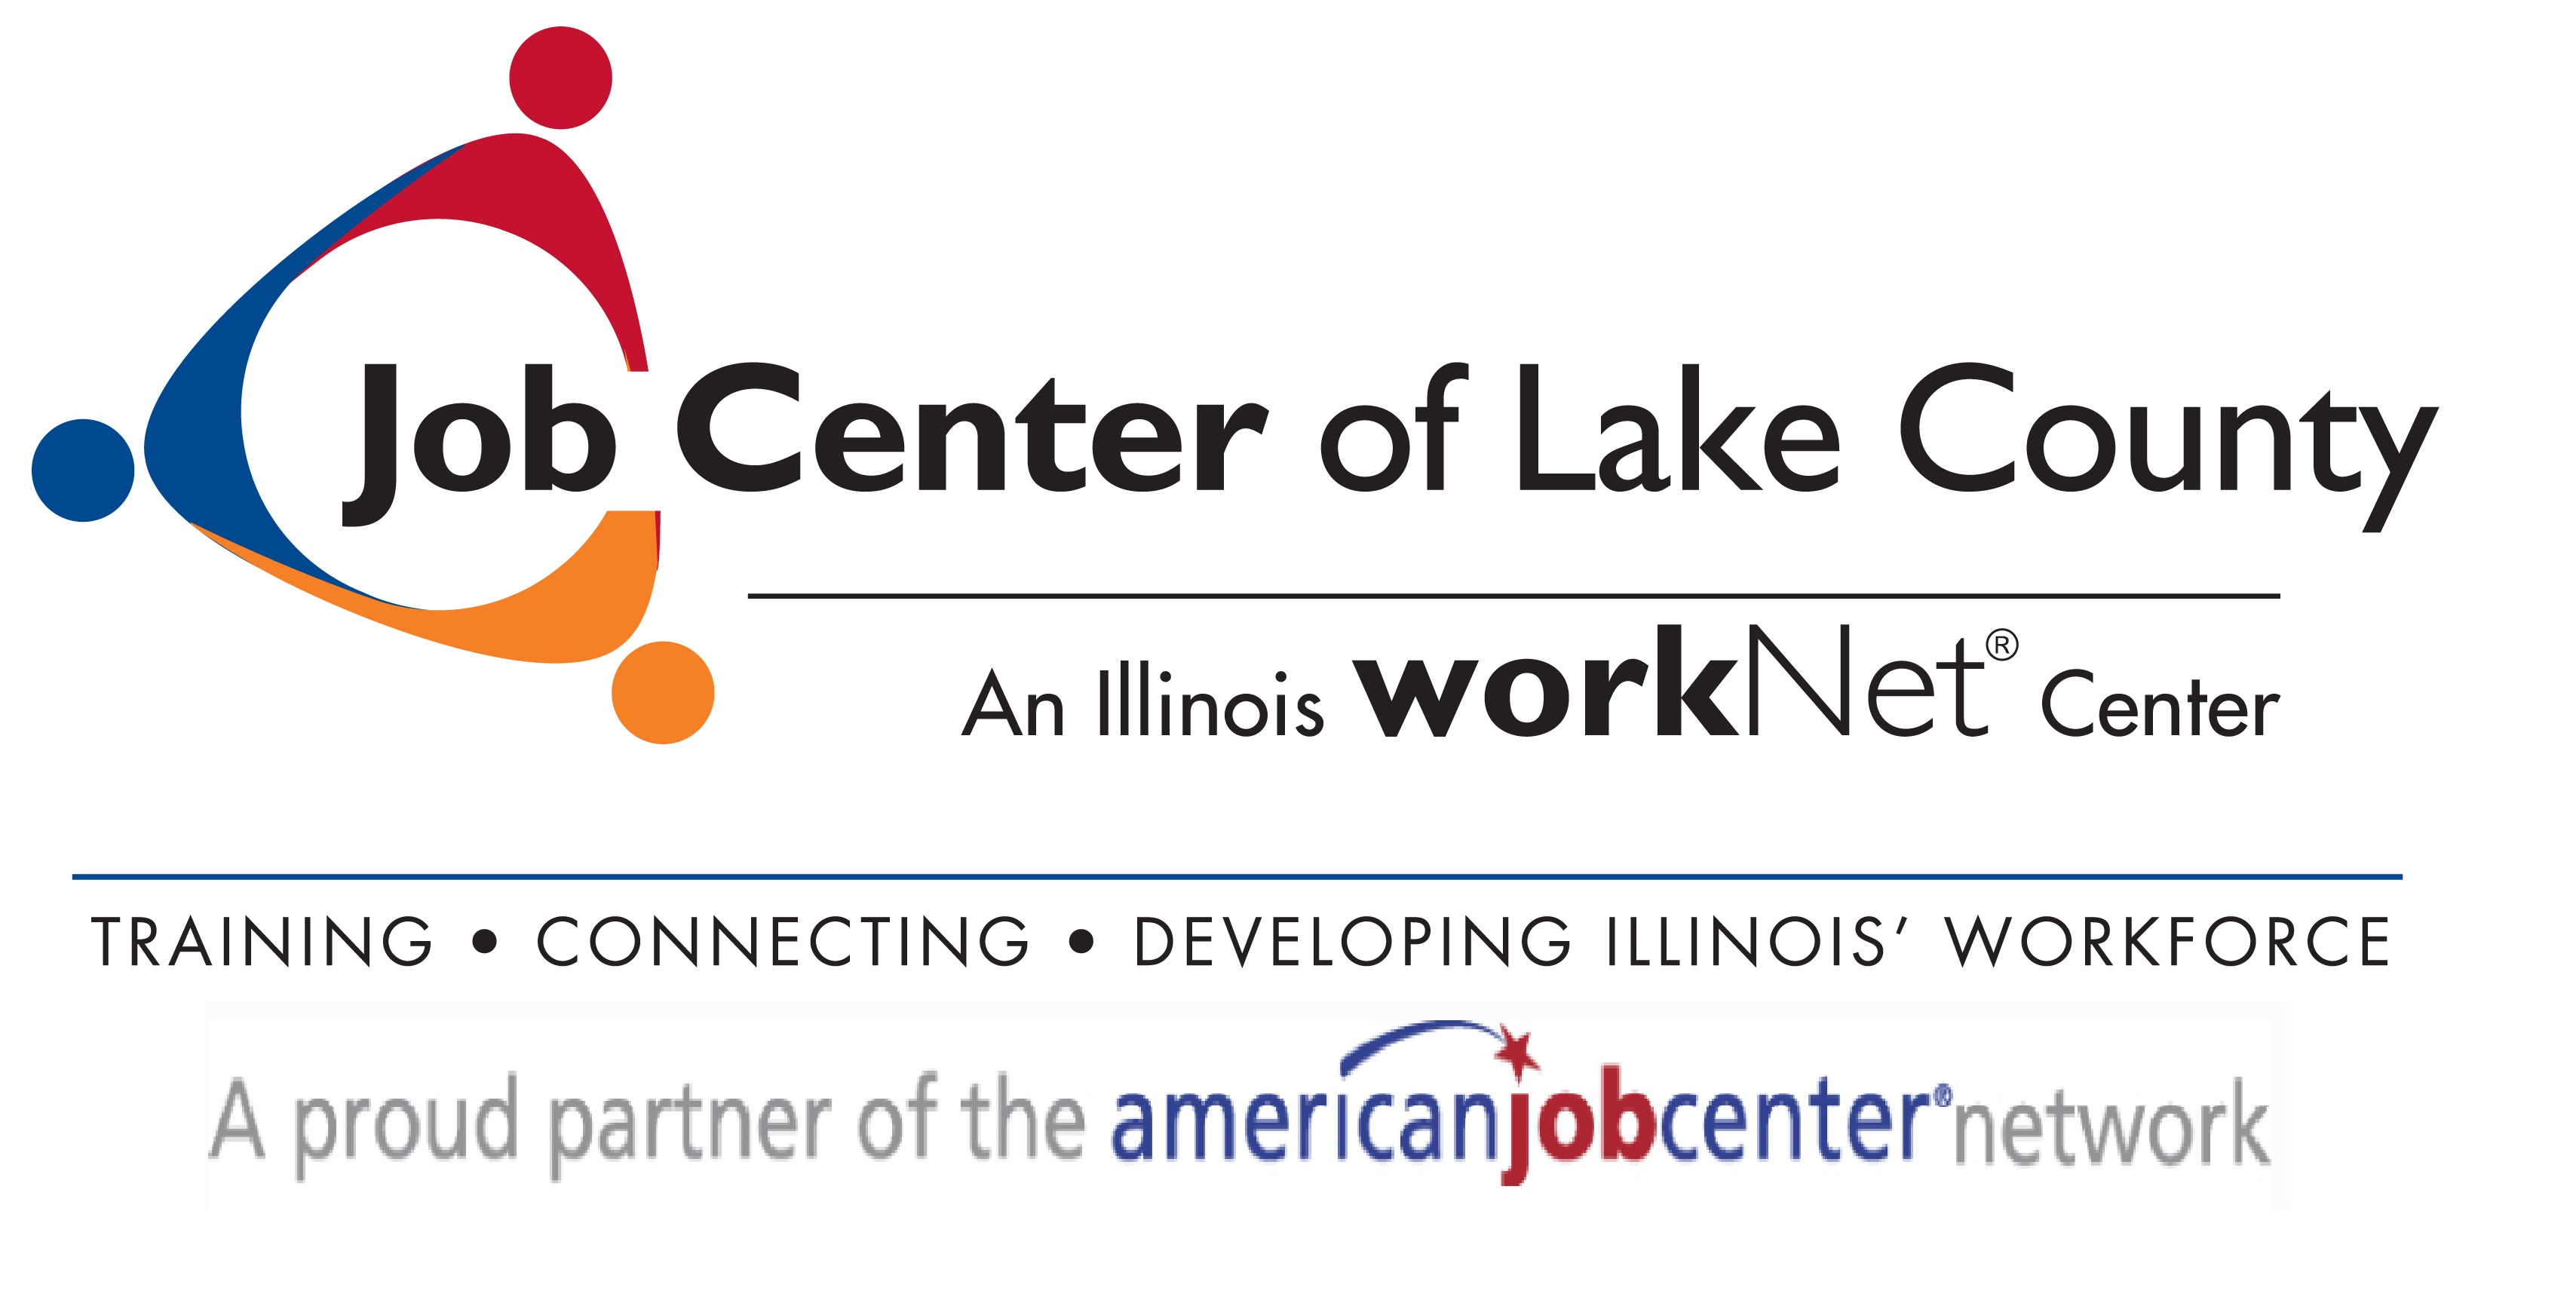 Job Center and American Job Center logos